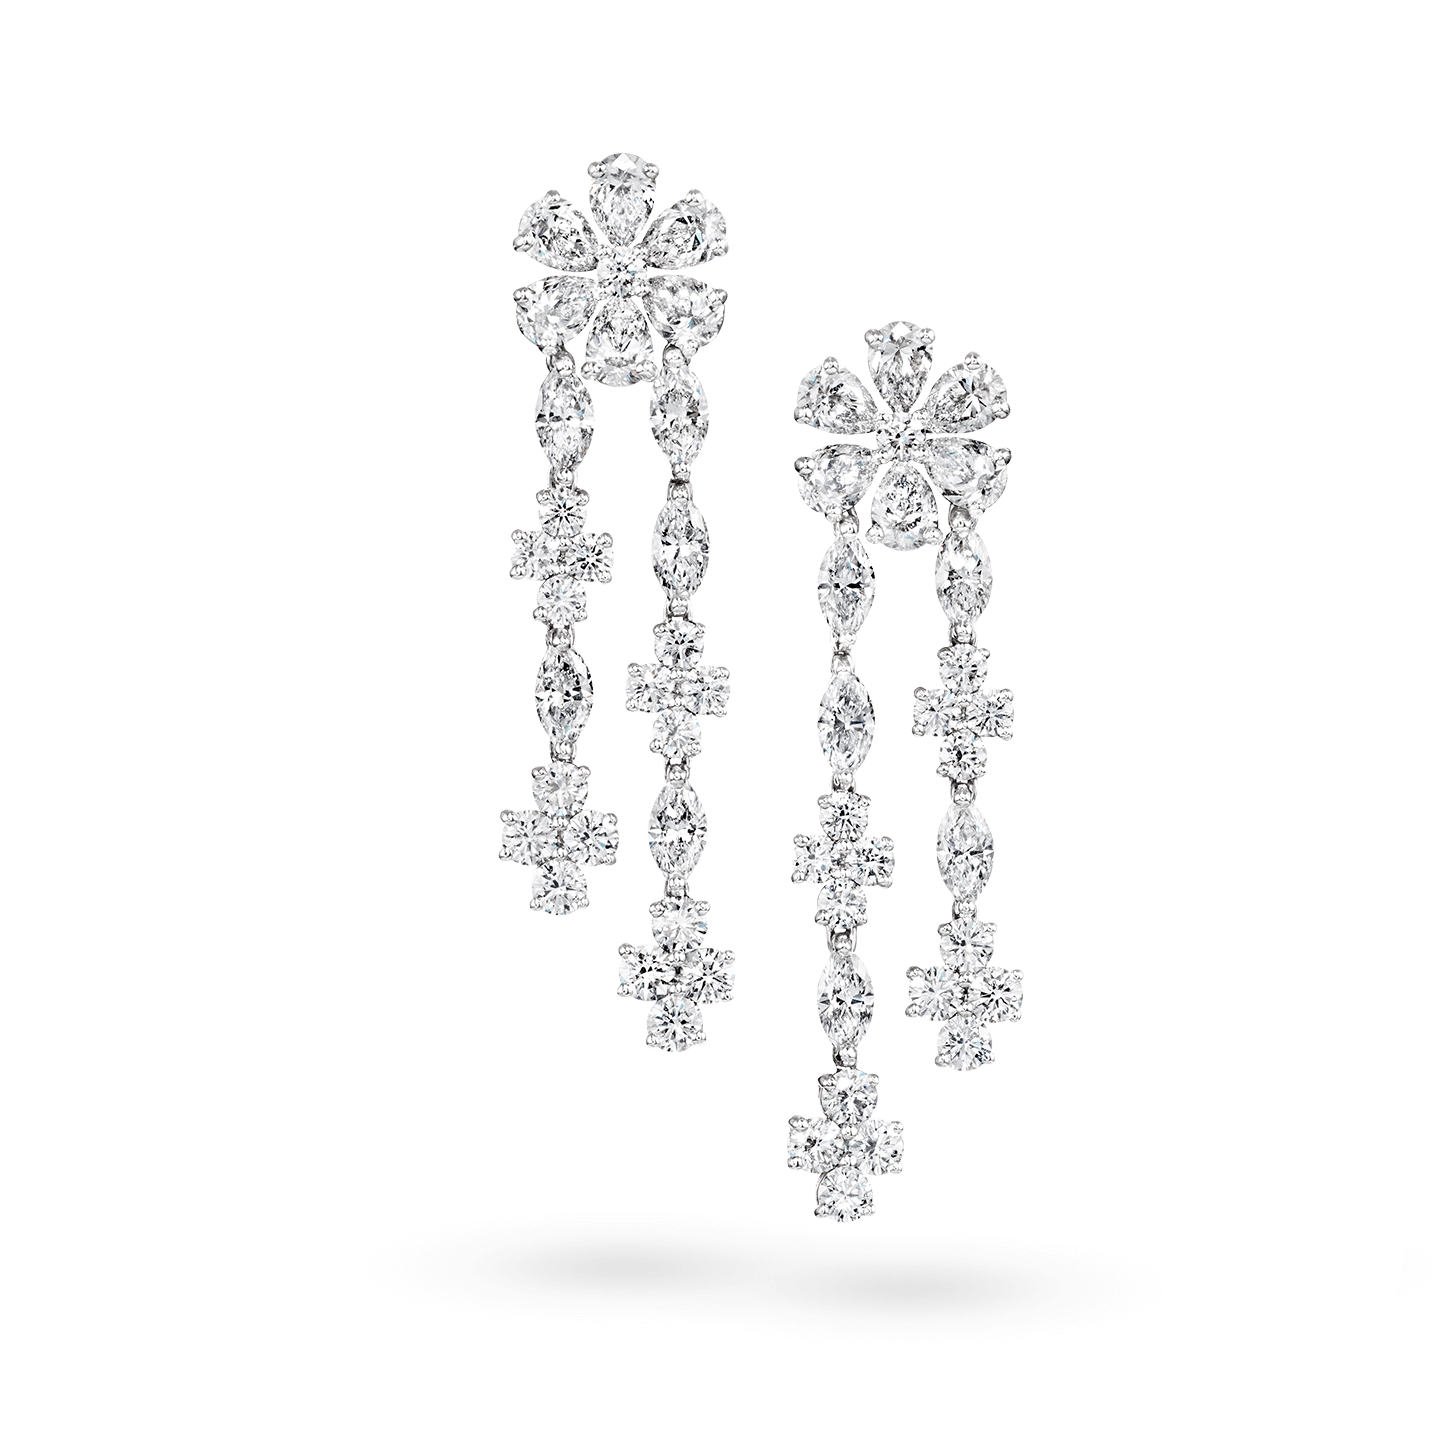 Forget-Me-Not Diamond Drop Earrings, Product Image 1